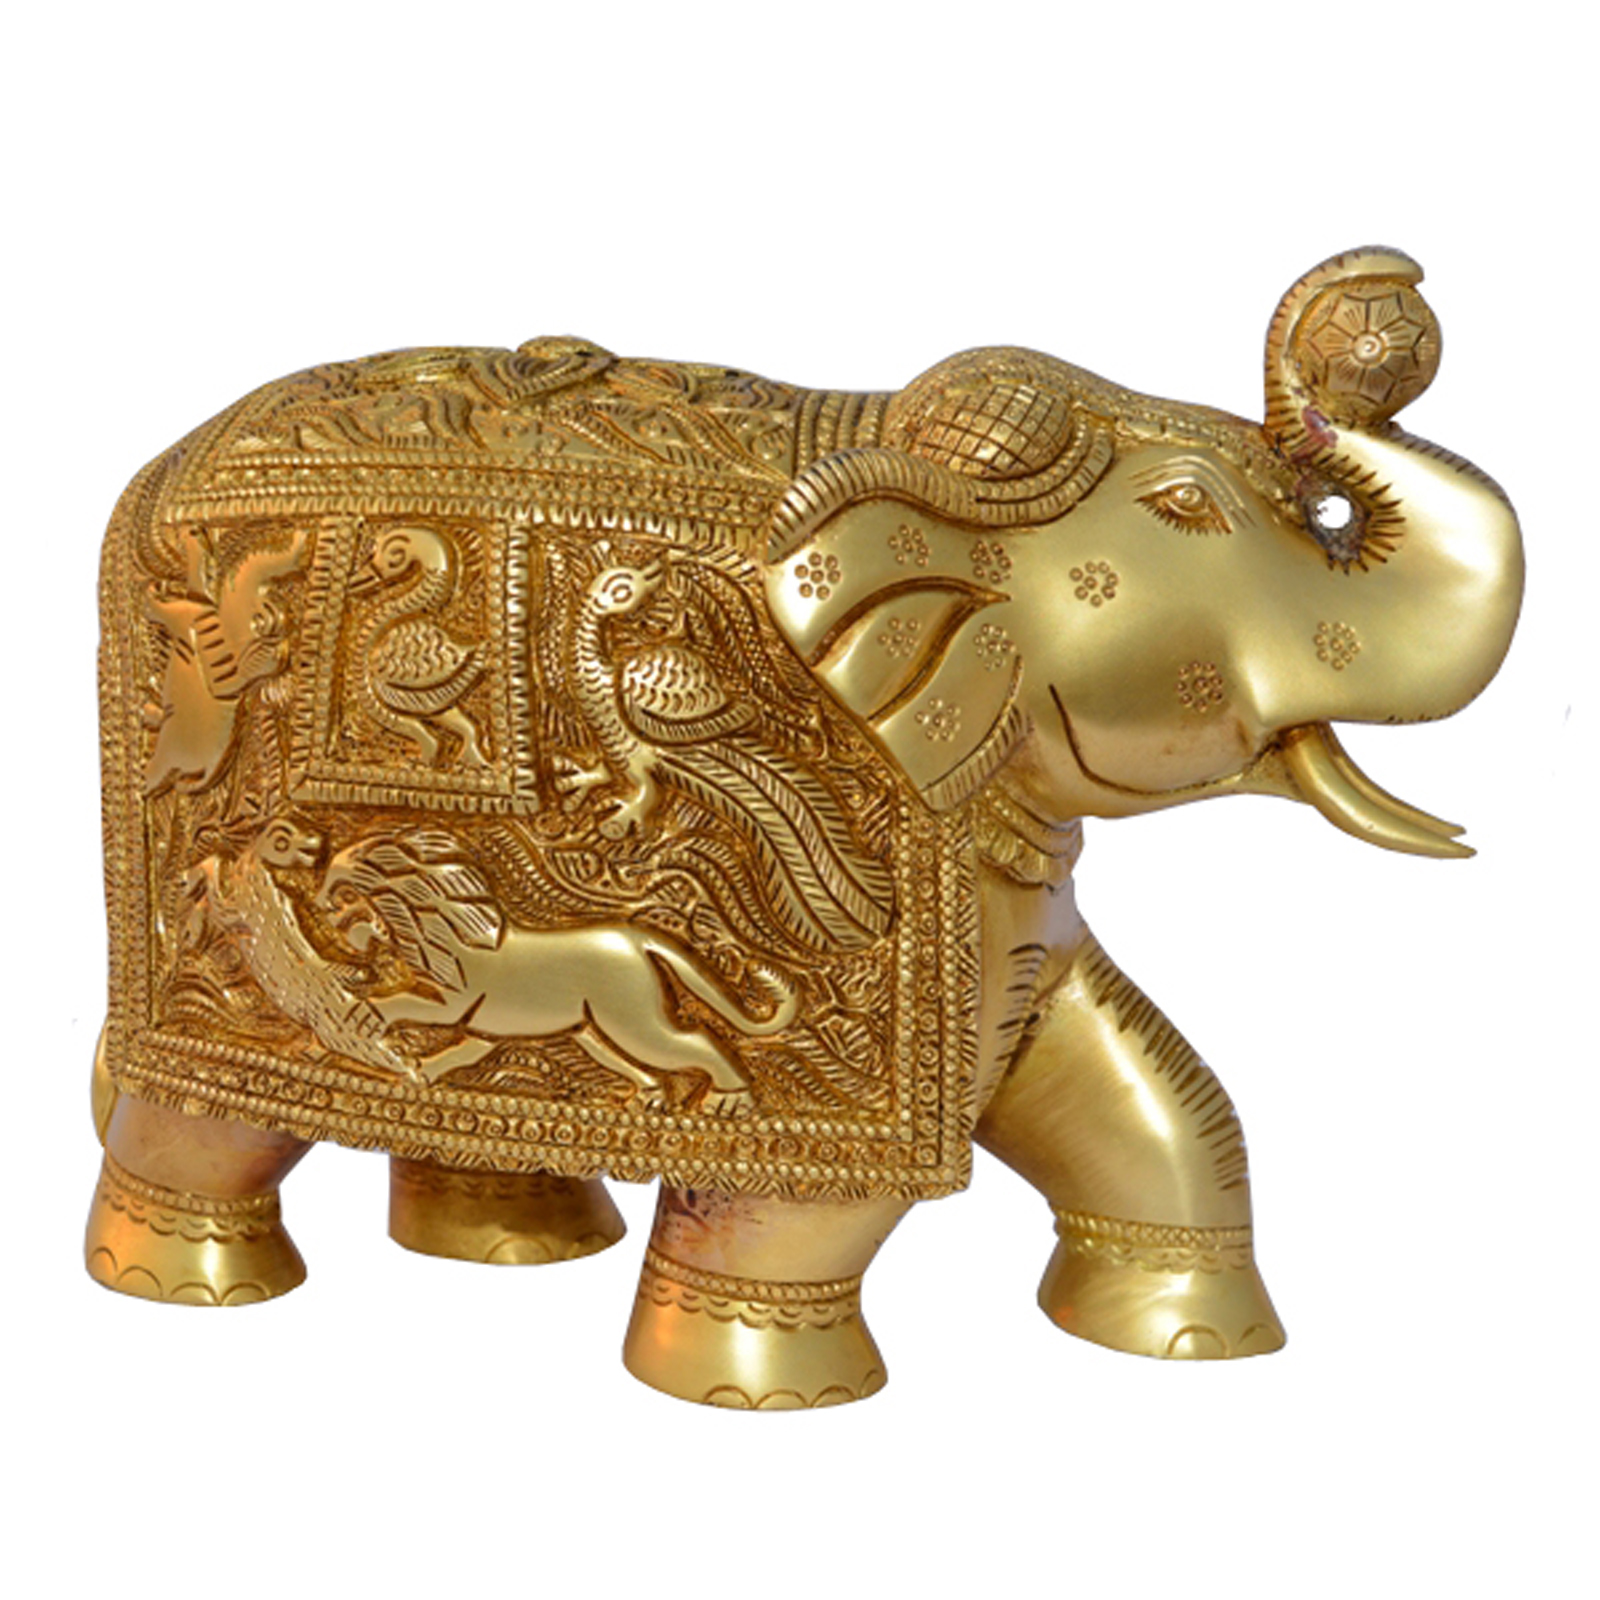 Royal Brass Elephant Decorative Statue With Engraved